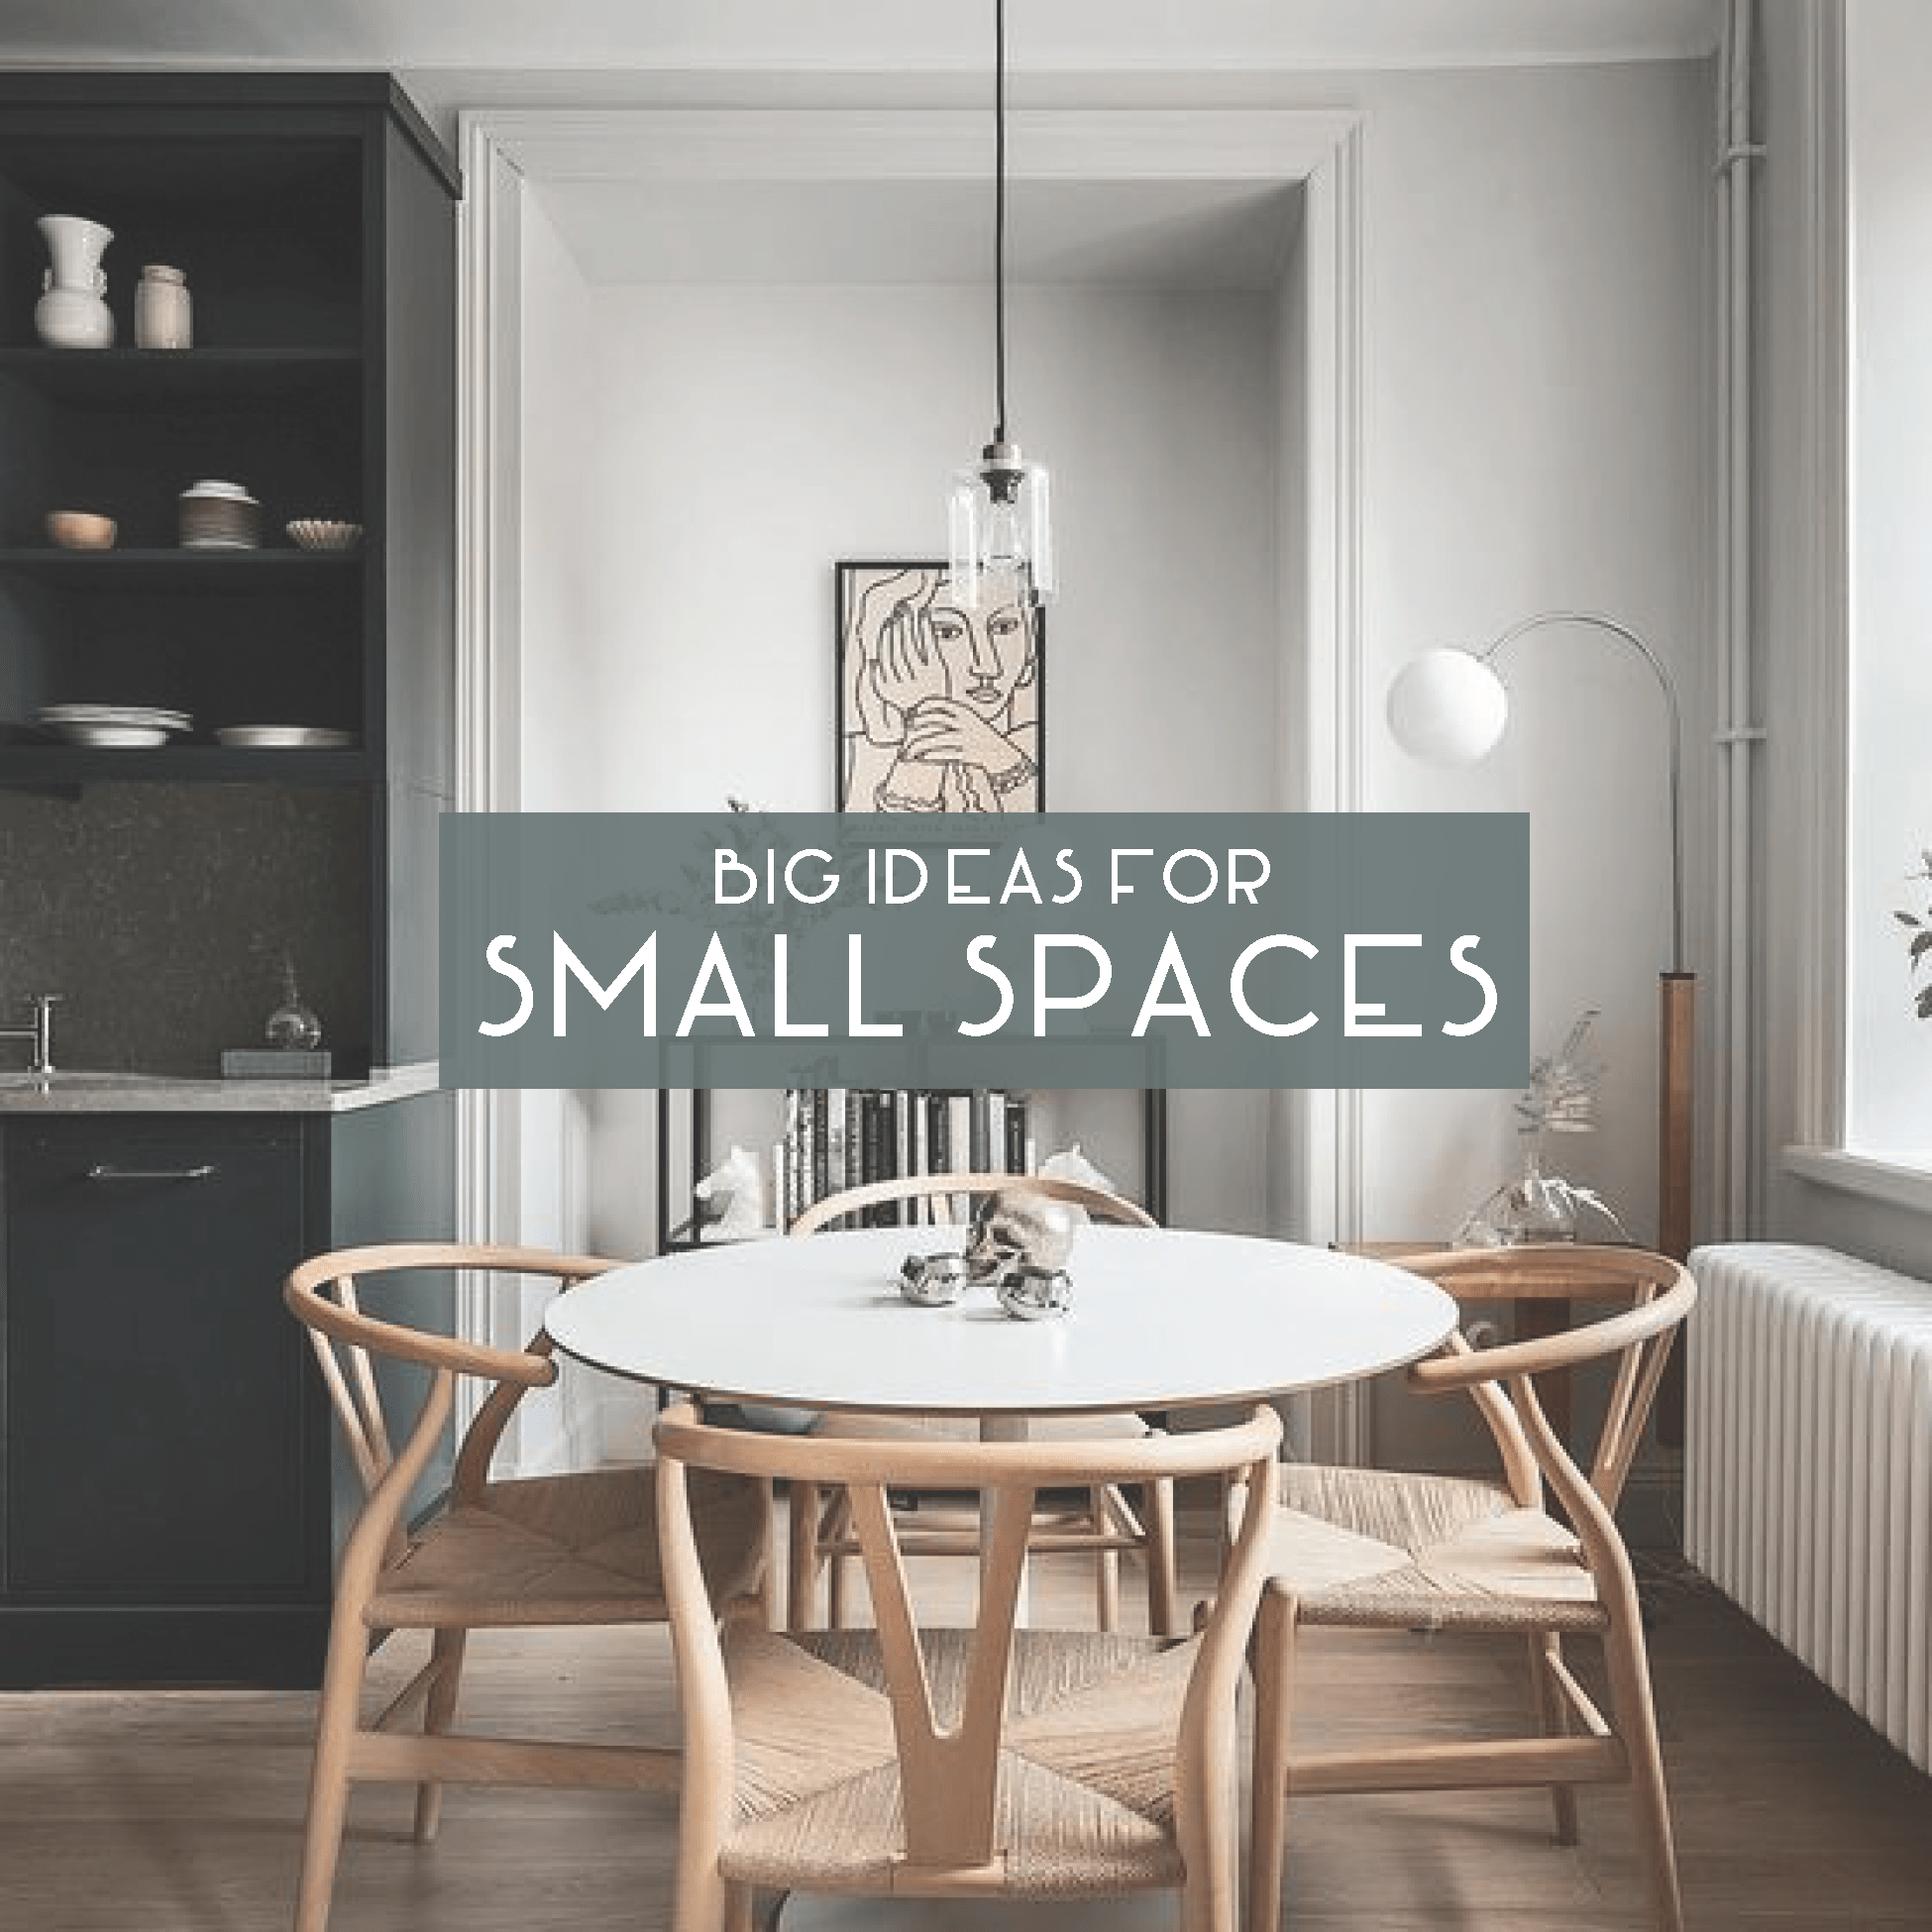 Catherine French Design - Small Spaces Big Ideas